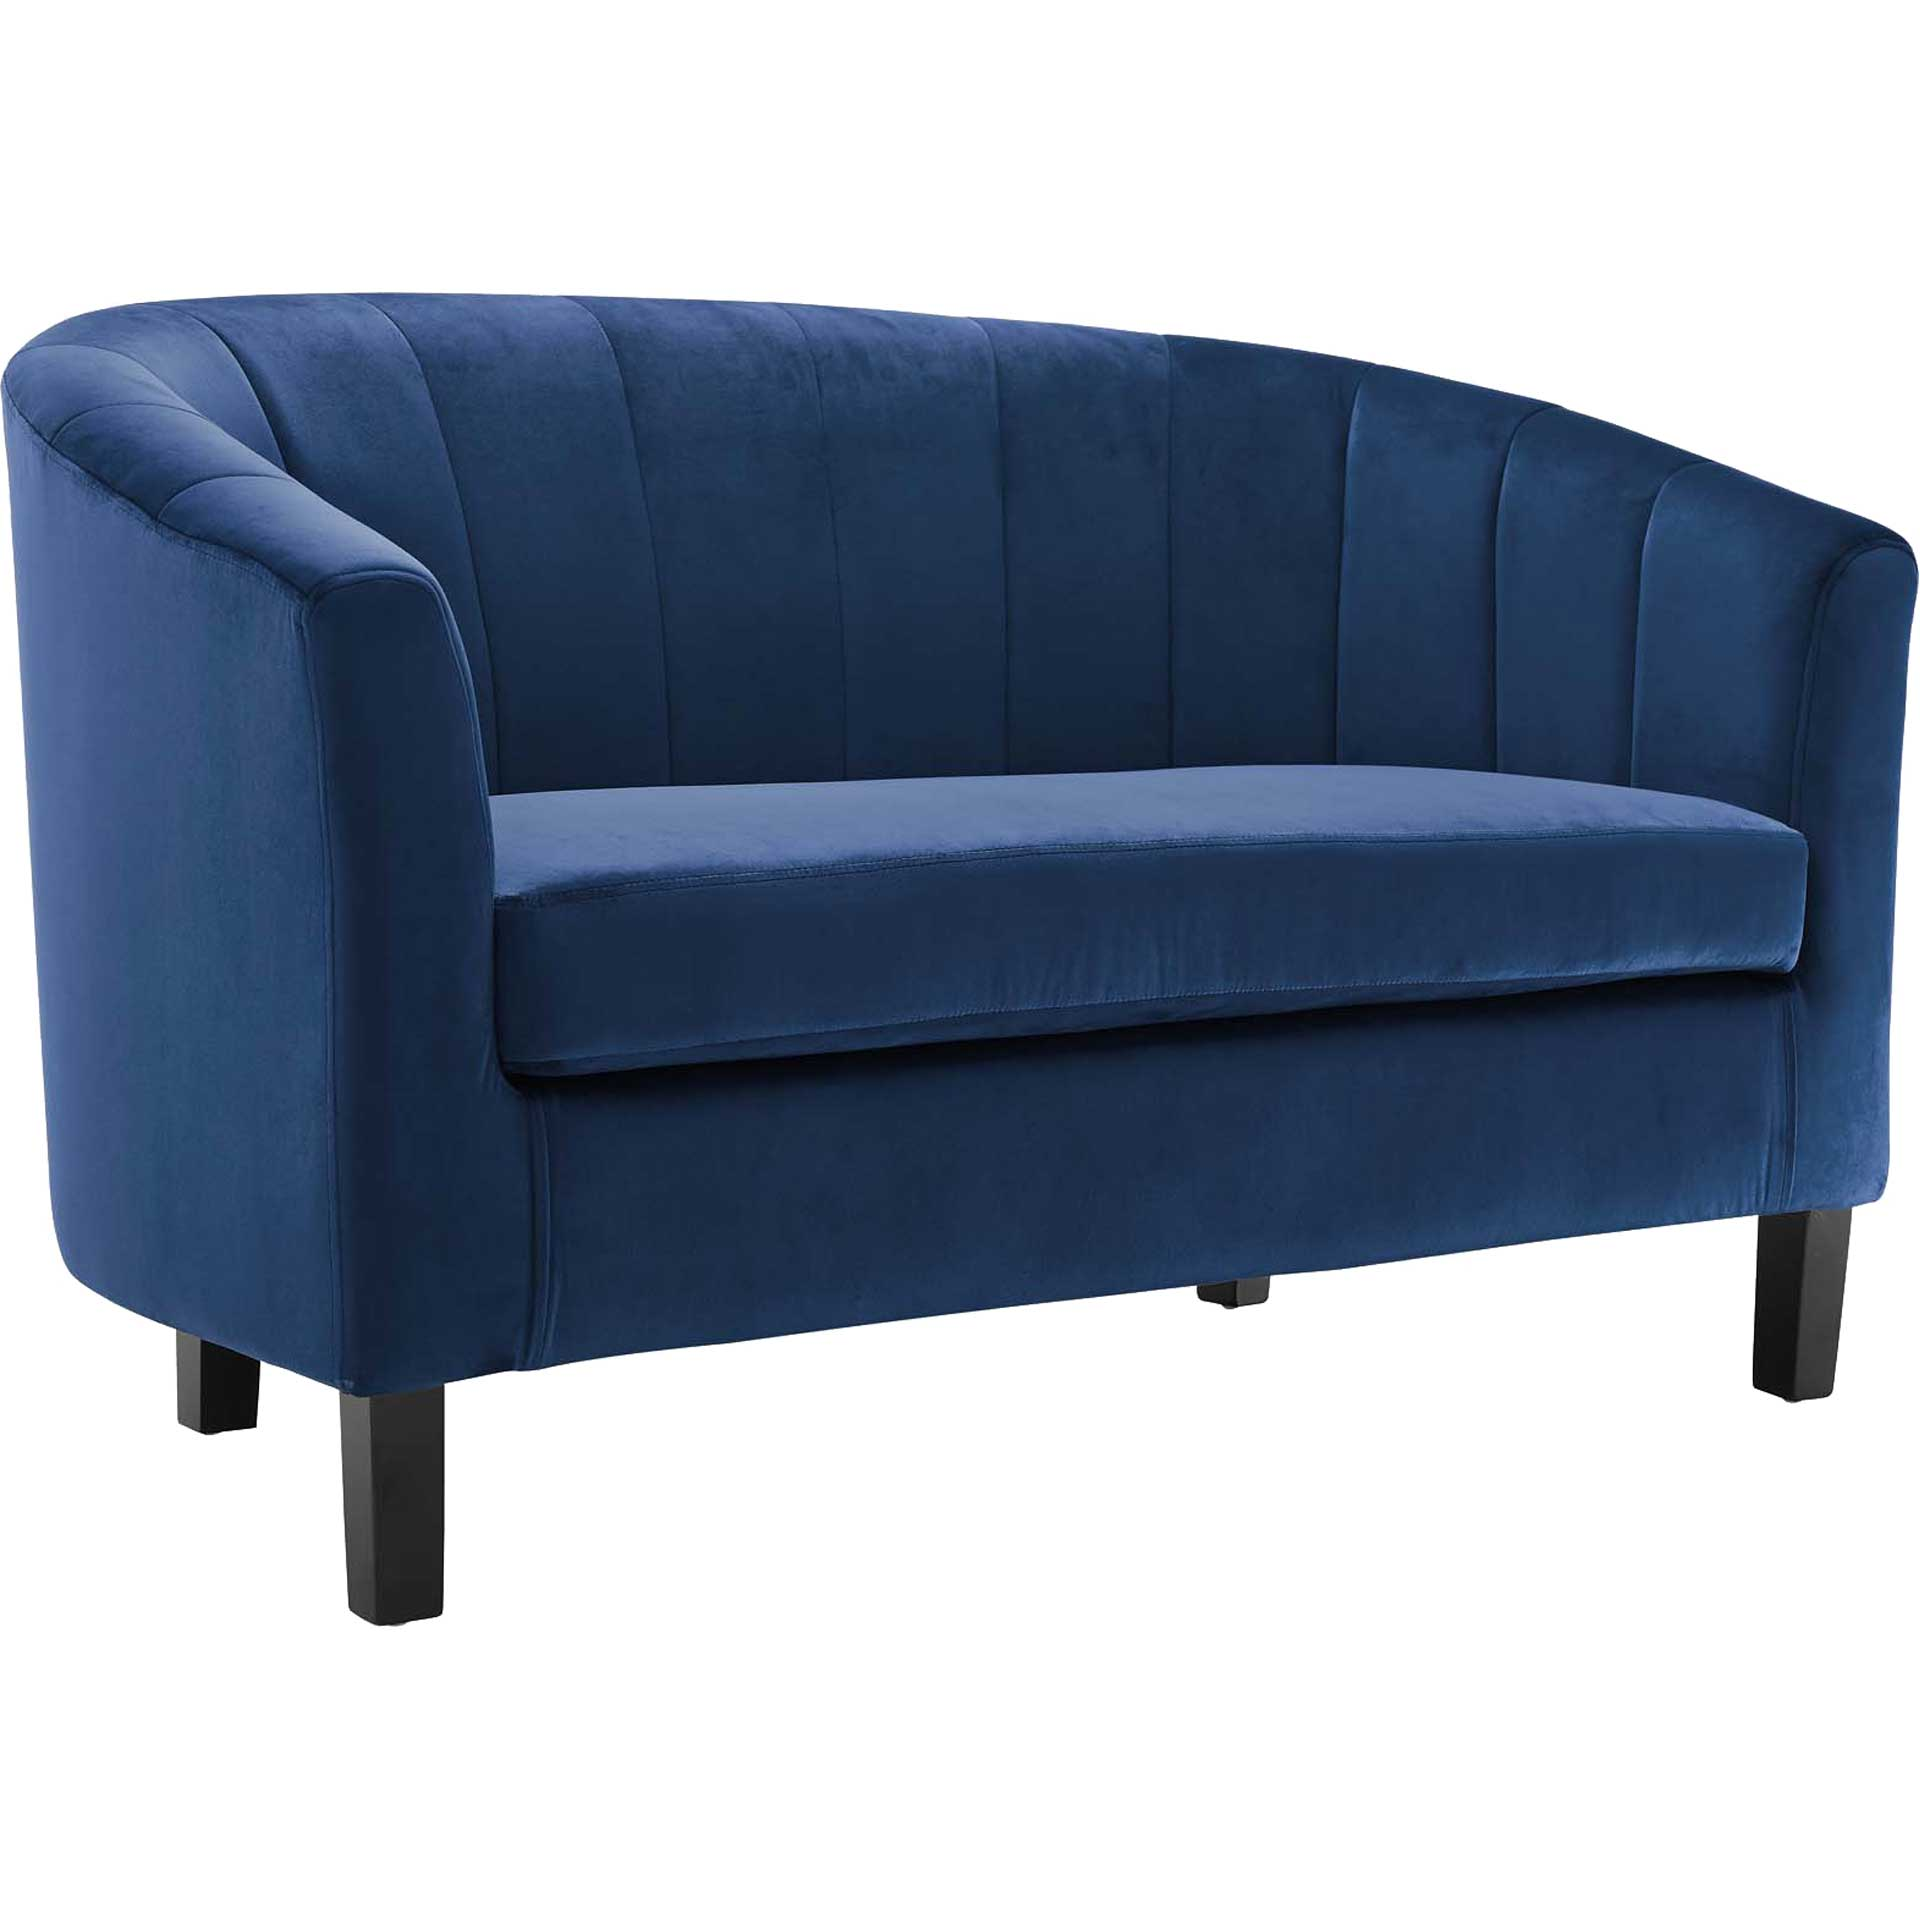 Paloma Channel Tufted Velvet Sofa Navy